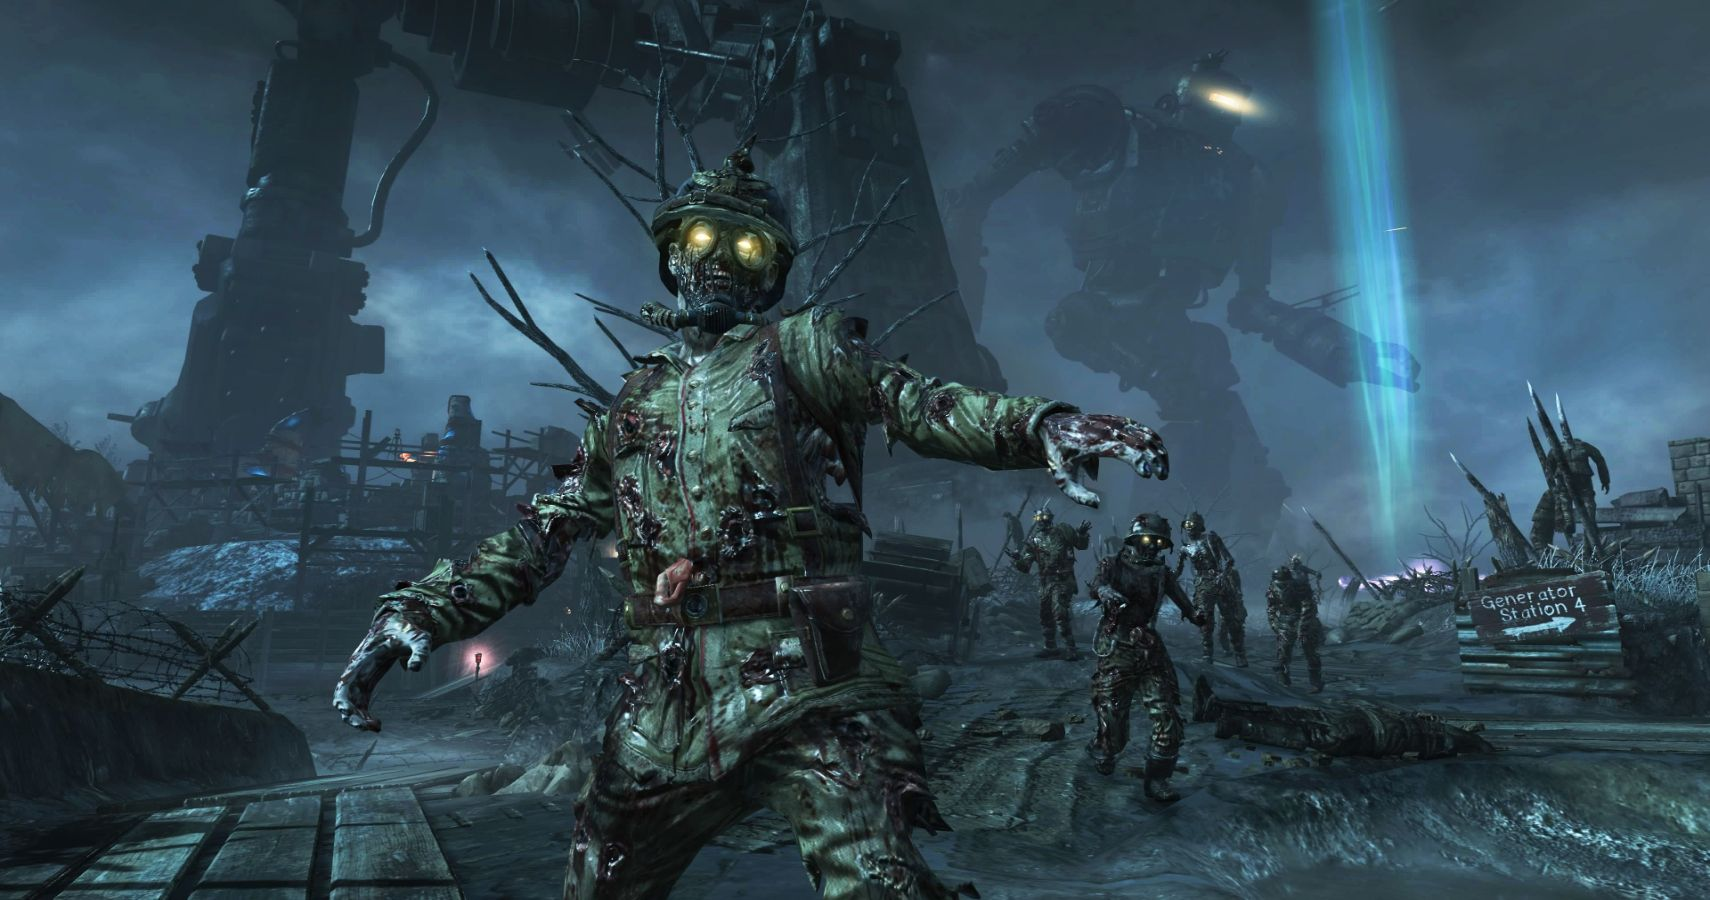 The Top 10 Call Of Duty Zombies Maps, Ranked | TheGamer Zombies Maps on steampunk map, werewolf map, lord of the rings map, draw map, plan map, united states map, mystara map, pokemon map, apocalypse map, fairy map, halloween map, globe map, alien map, nerd map, easter map, freedom map, land map,